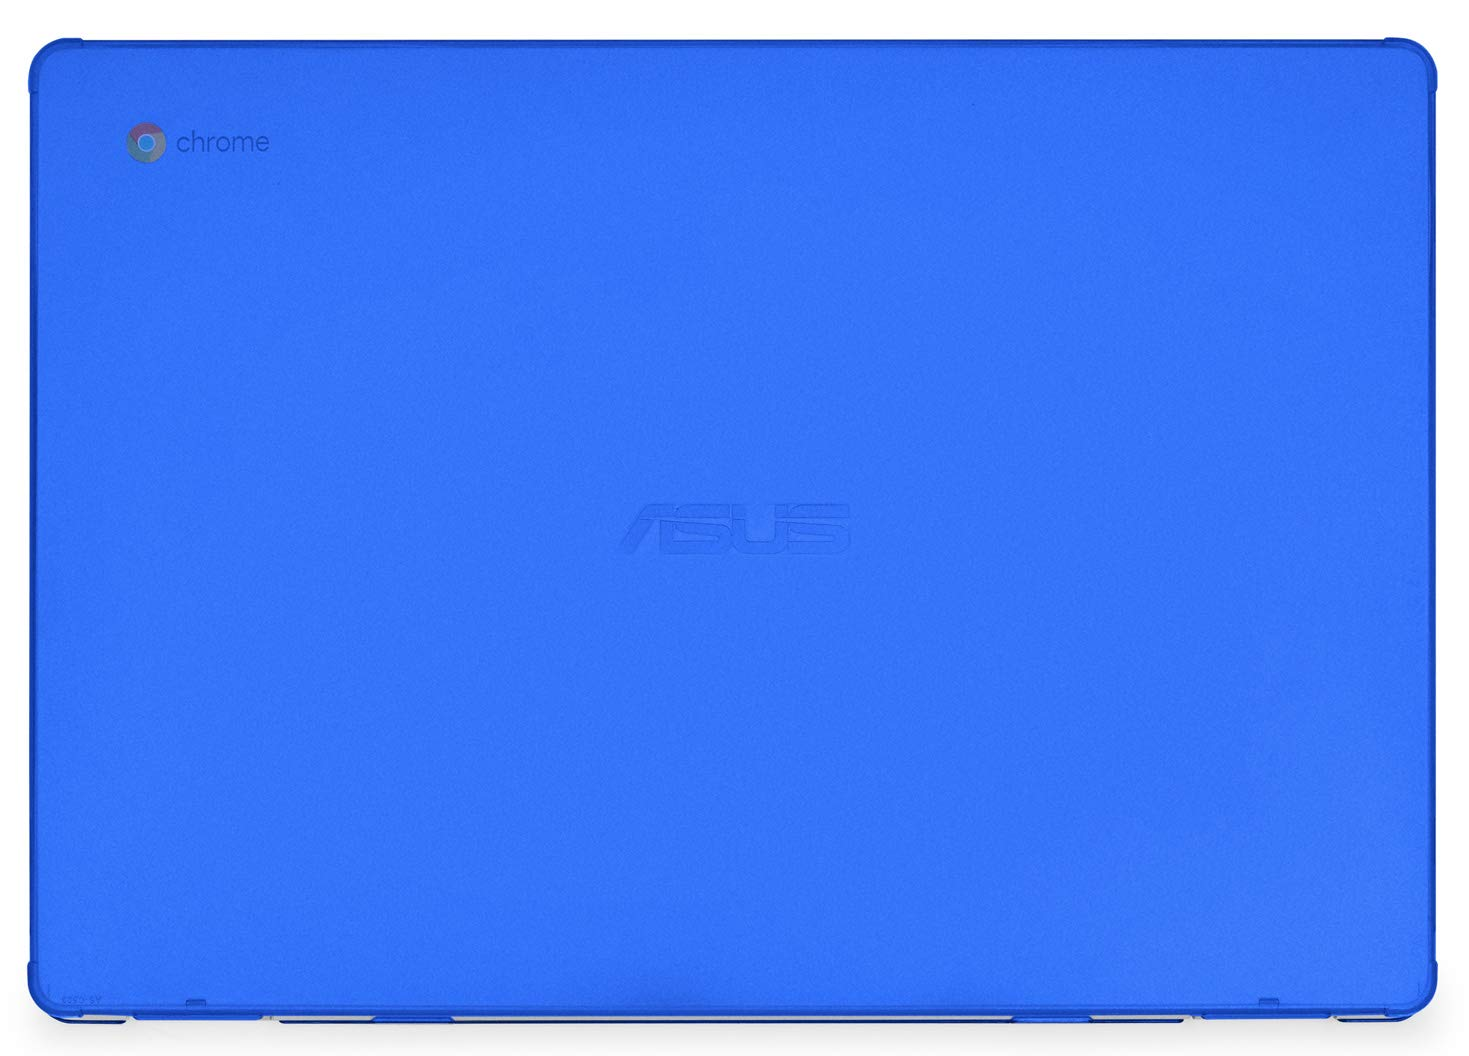 mCover Hard Shell Case for 15.6-inch ASUS Chromebook C523NA Series Laptop - ASUS C523 Blue